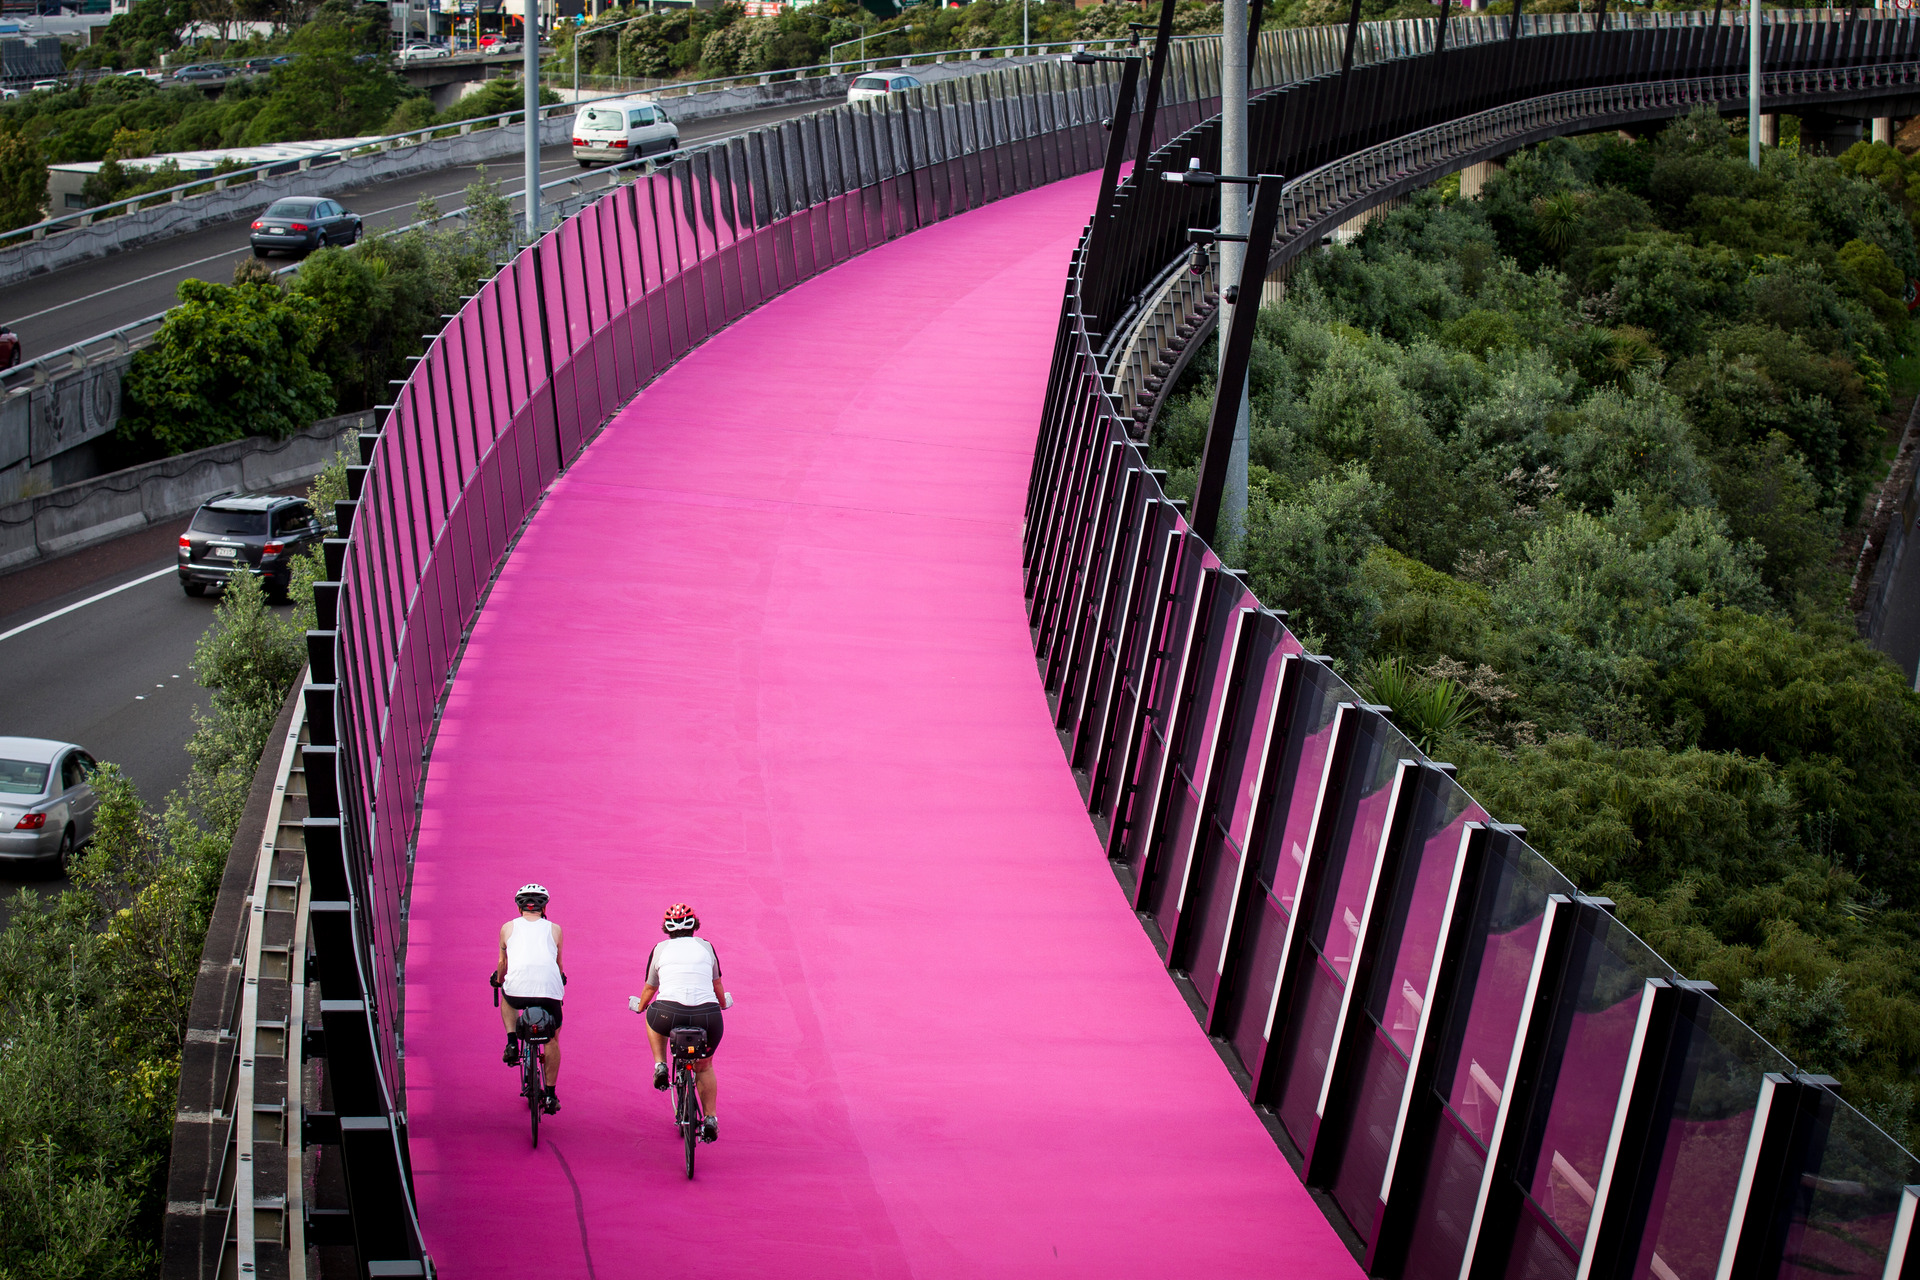 Mike Hosking: Cycleways exposed as the sham they are